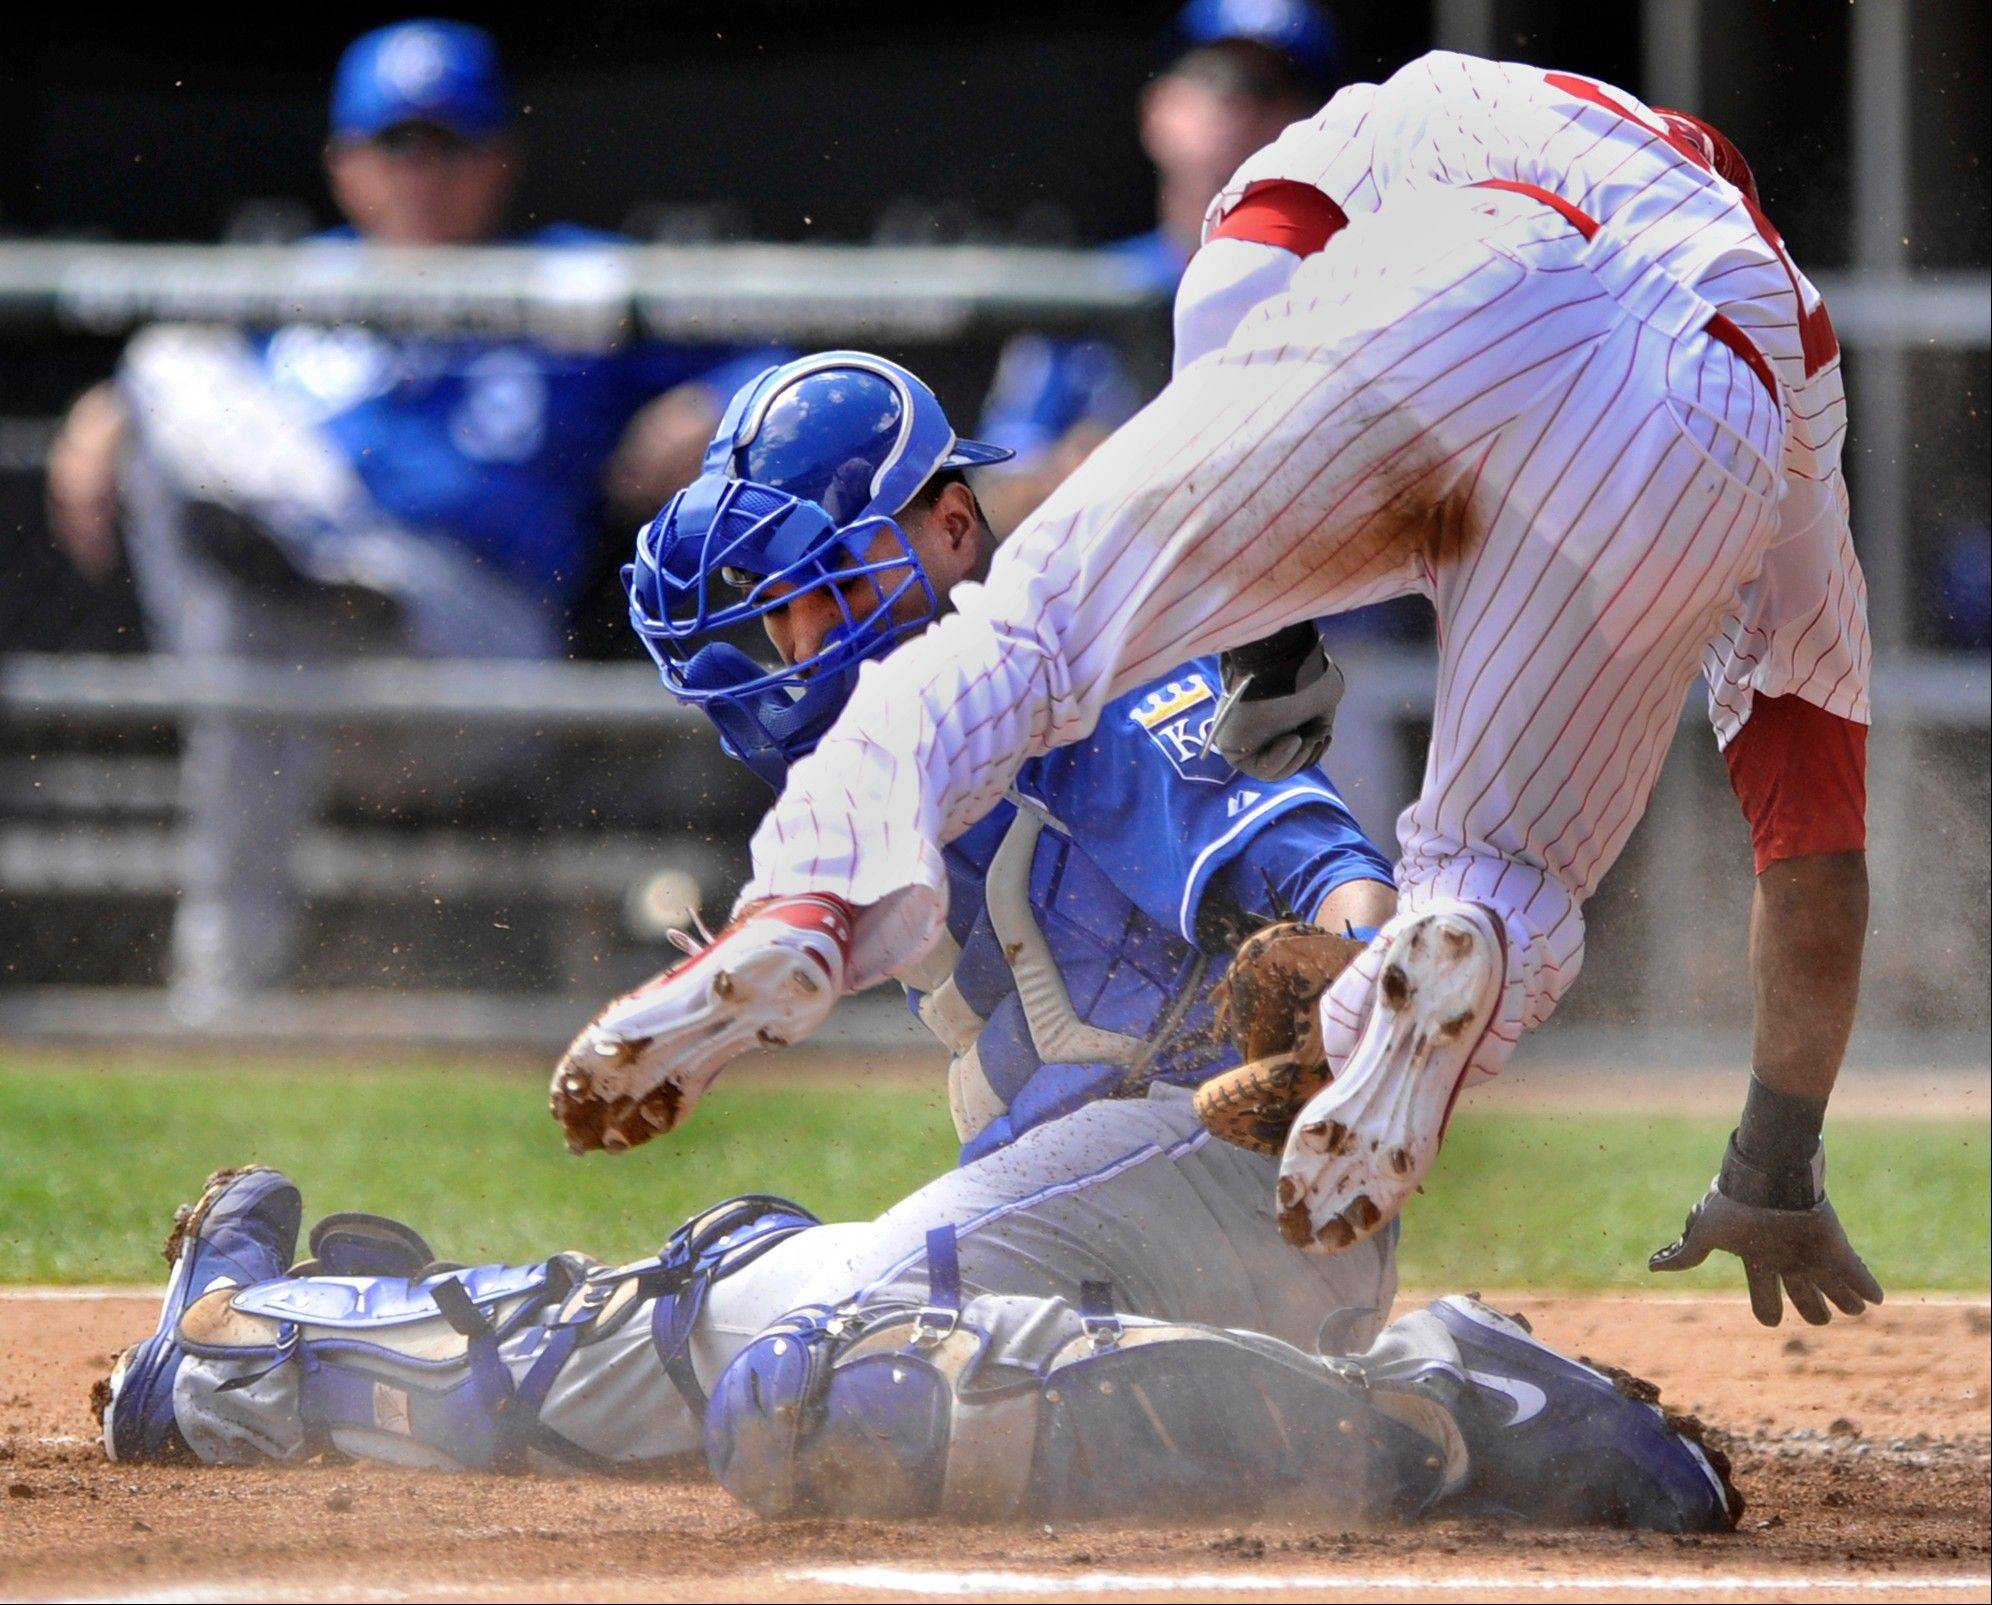 Kansas City Royals catcher Salvador Perez, left, tags out the White Sox' Alejandro De Aza, right, at home plate after De Aza tagged up at third base on a Dewayne Wise pop-up in Sunday's first inning at U.S. Cellular Field.